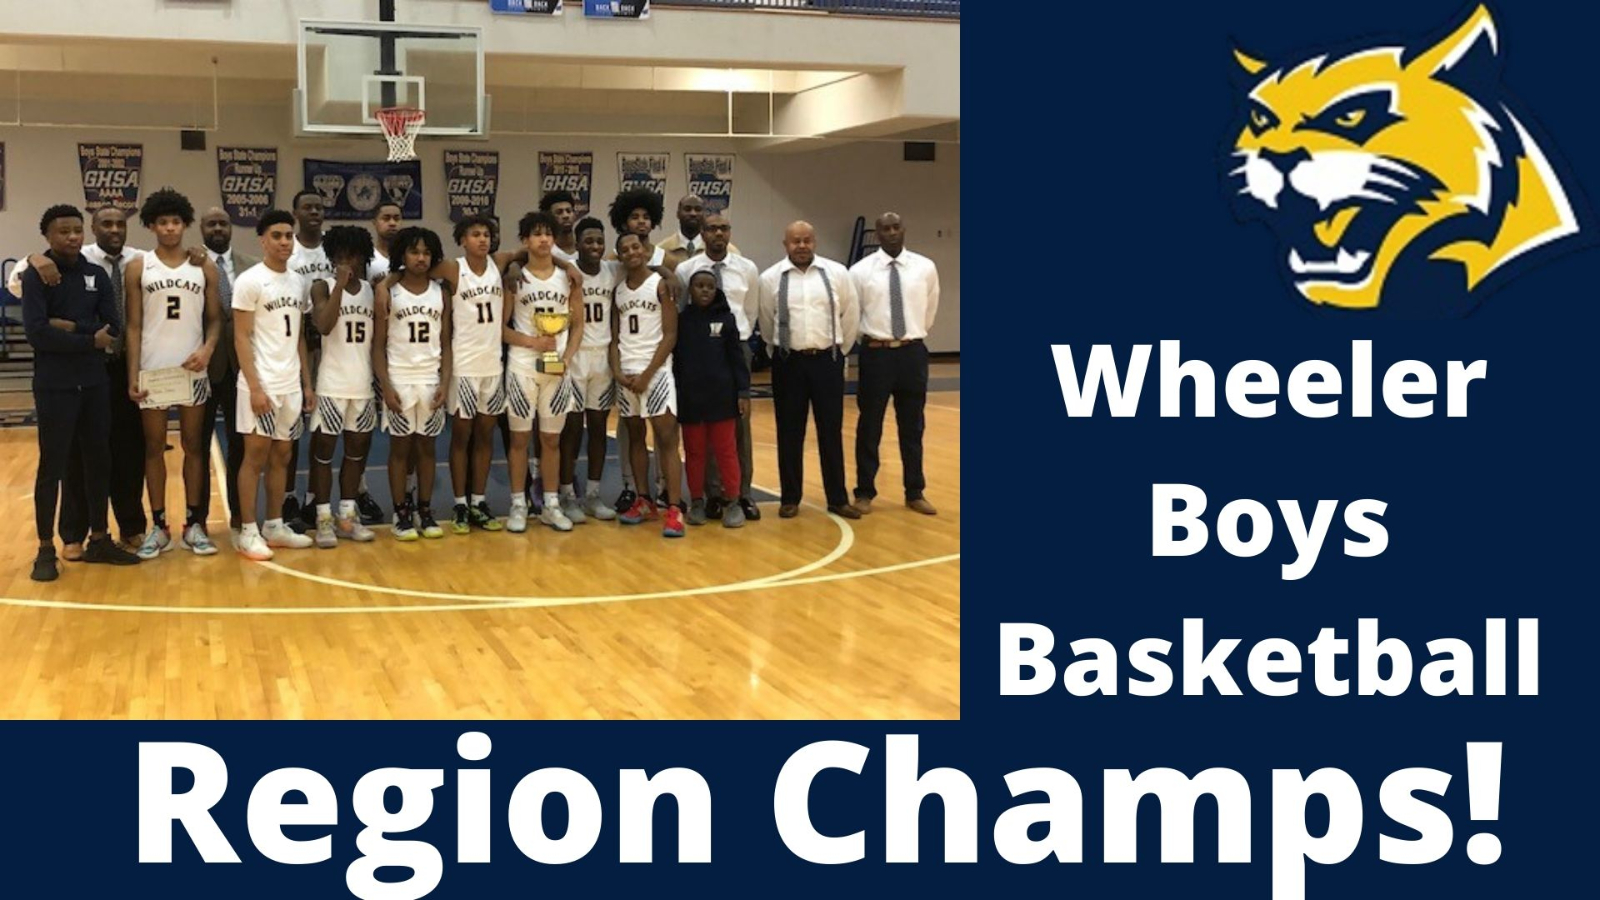 Region Champions! Take on Etowah at Home Friday @ 7pm